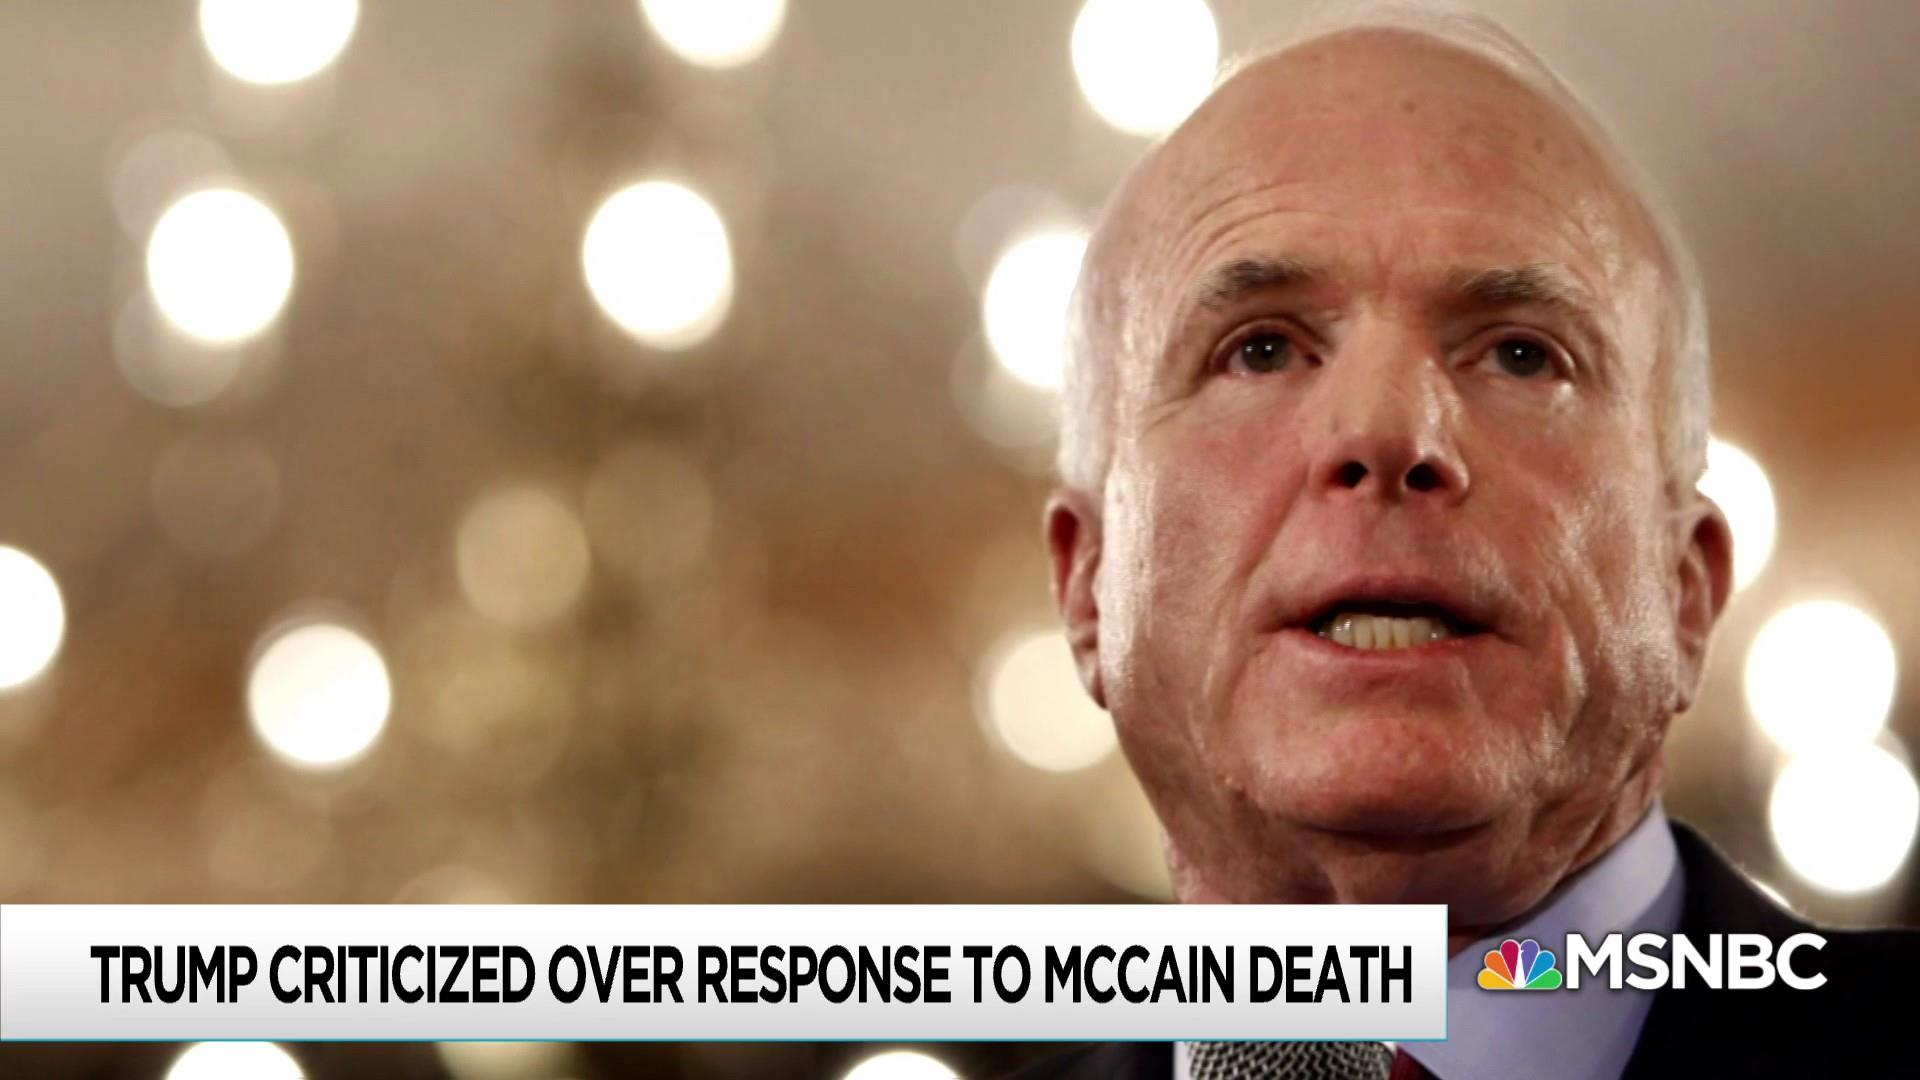 Trump White House fails at simple decency in McCain response